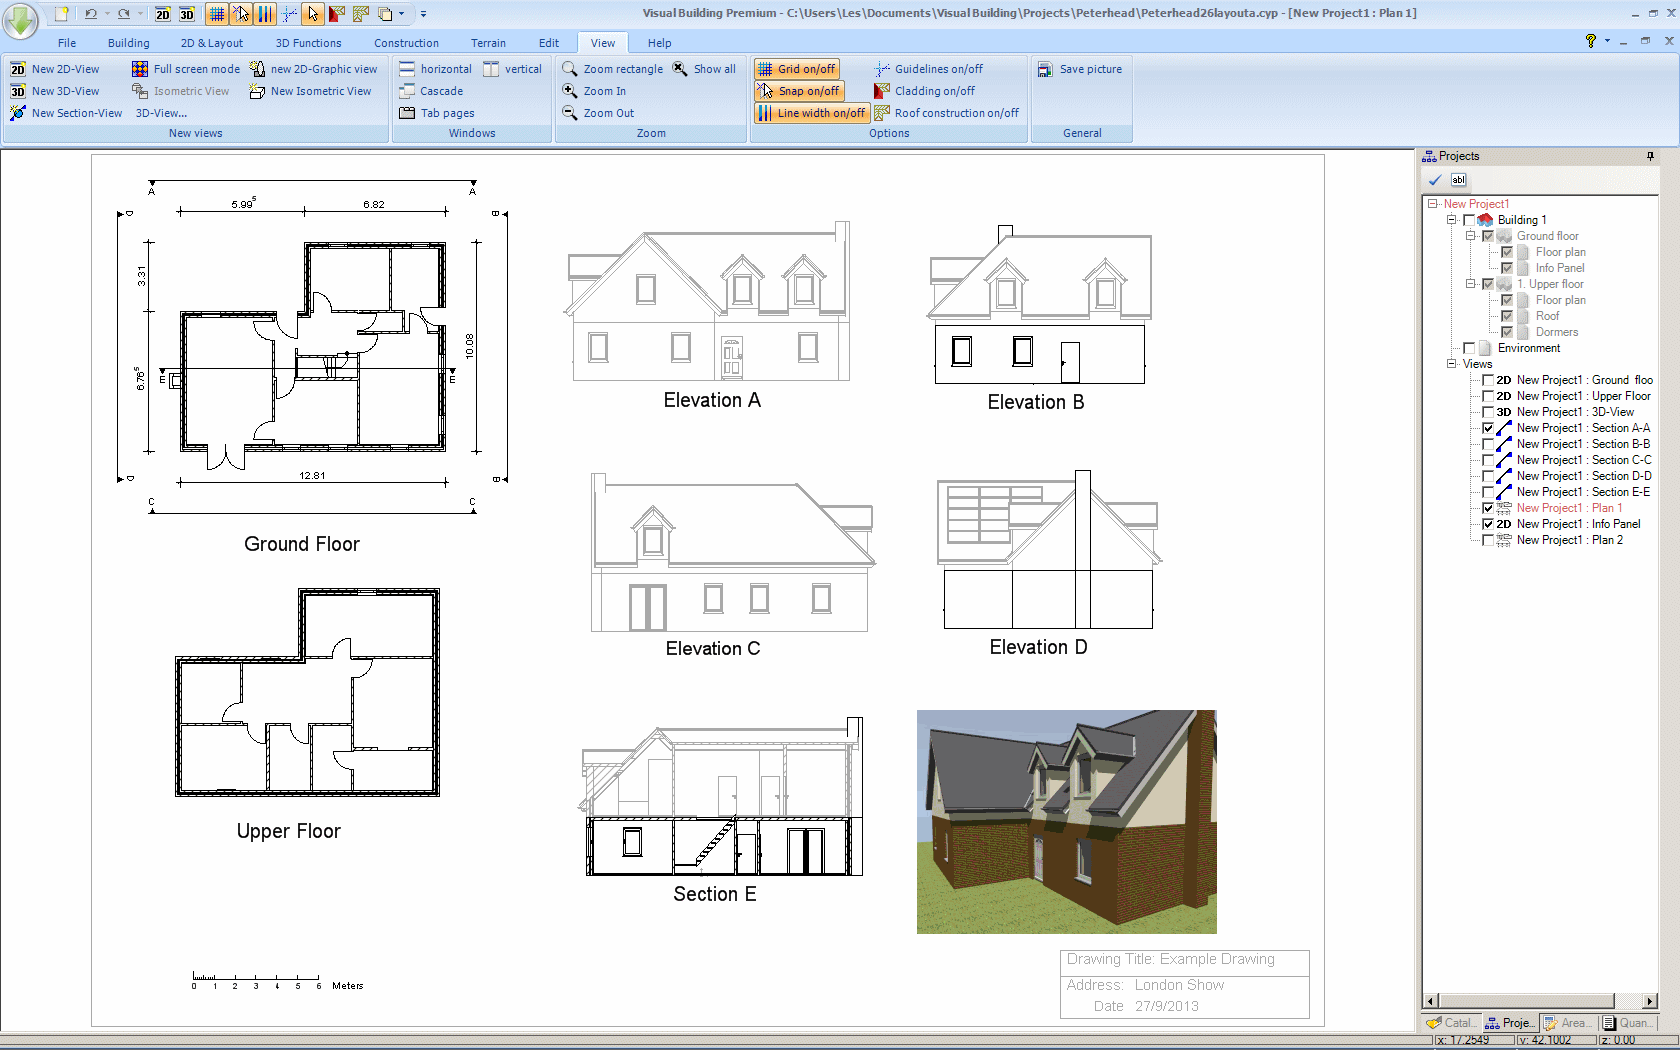 House Elevation Plan Software : Building plan drawing at getdrawings free for